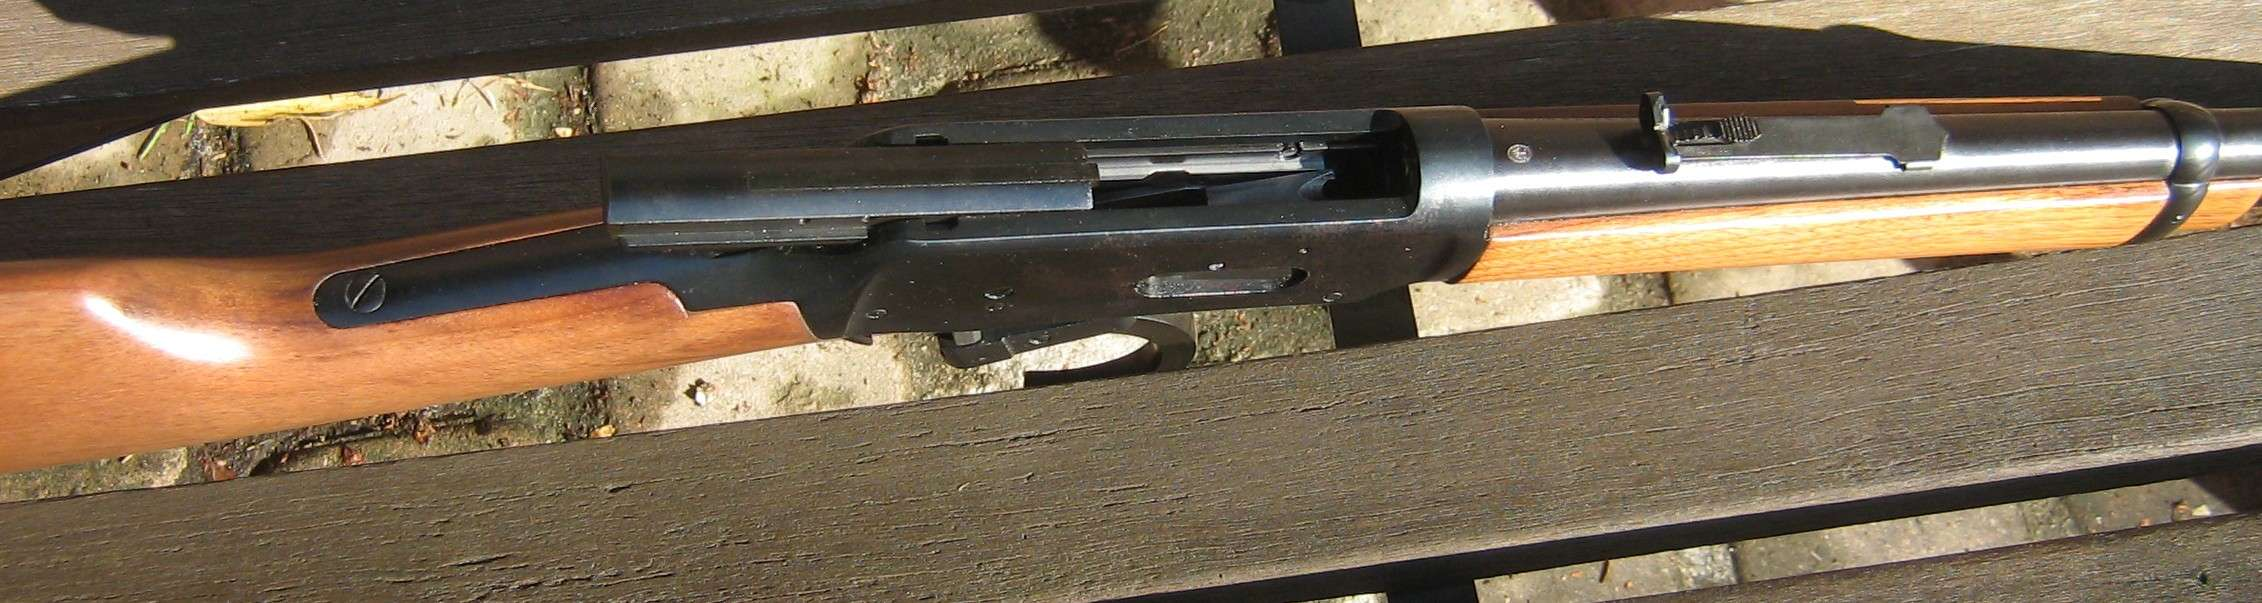 Winchester 94 Img_3253